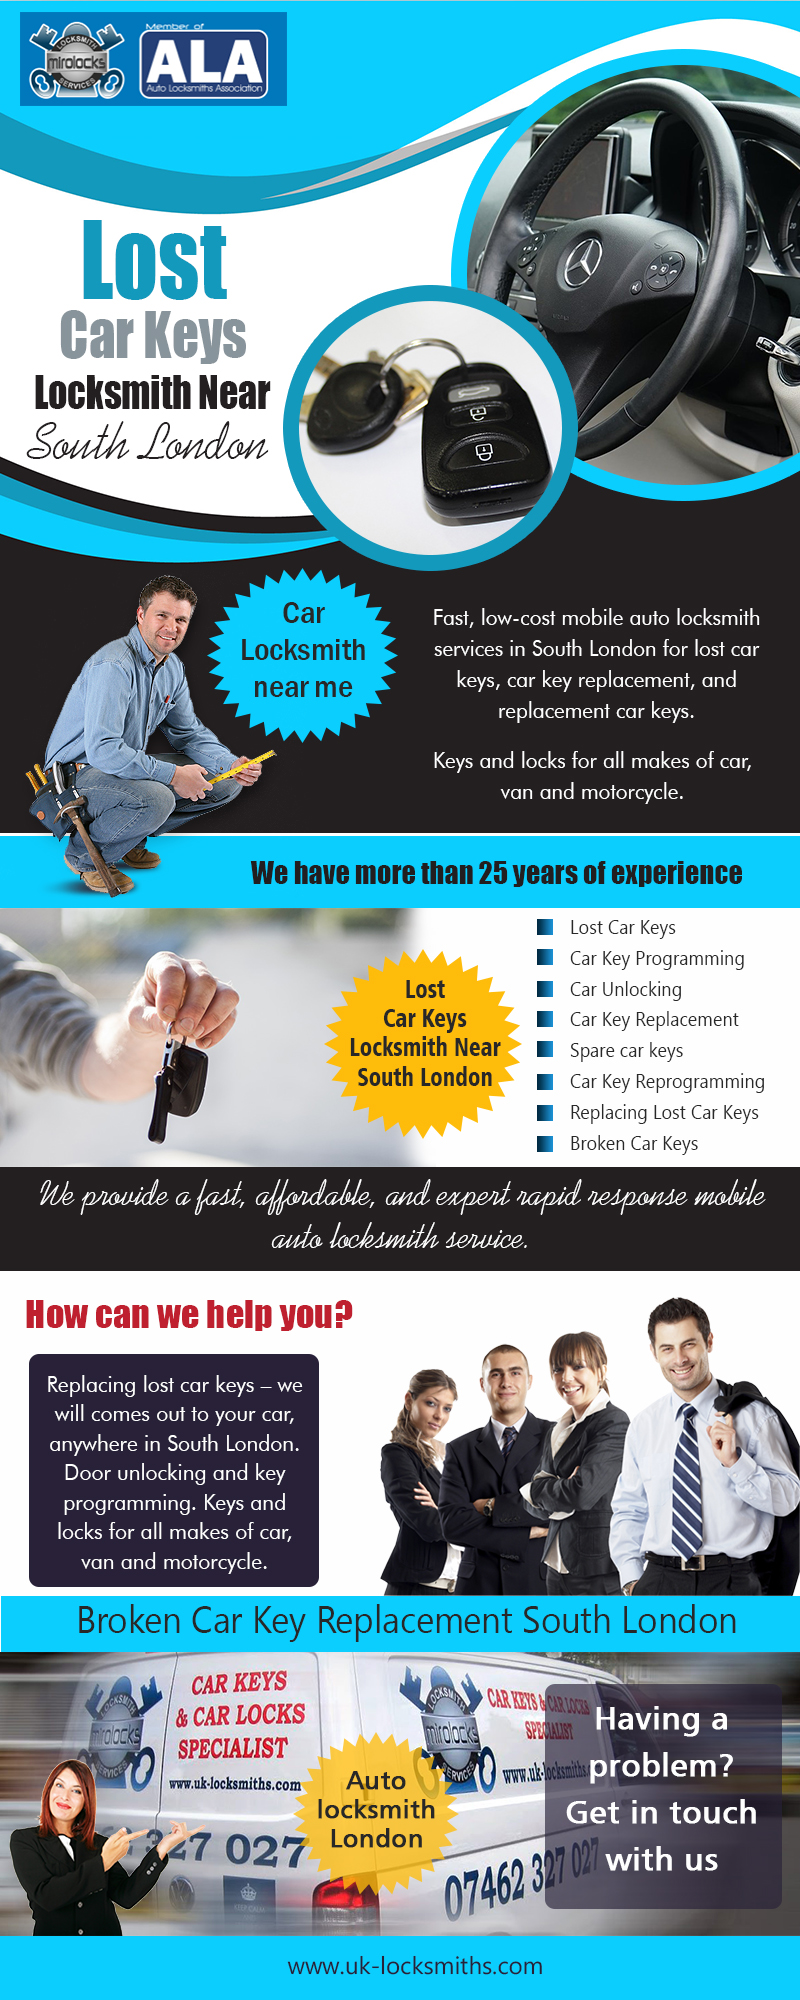 Lost Car Keys Locksmith Near South London | Call – 07462 327 027 | uk-locksmiths.com